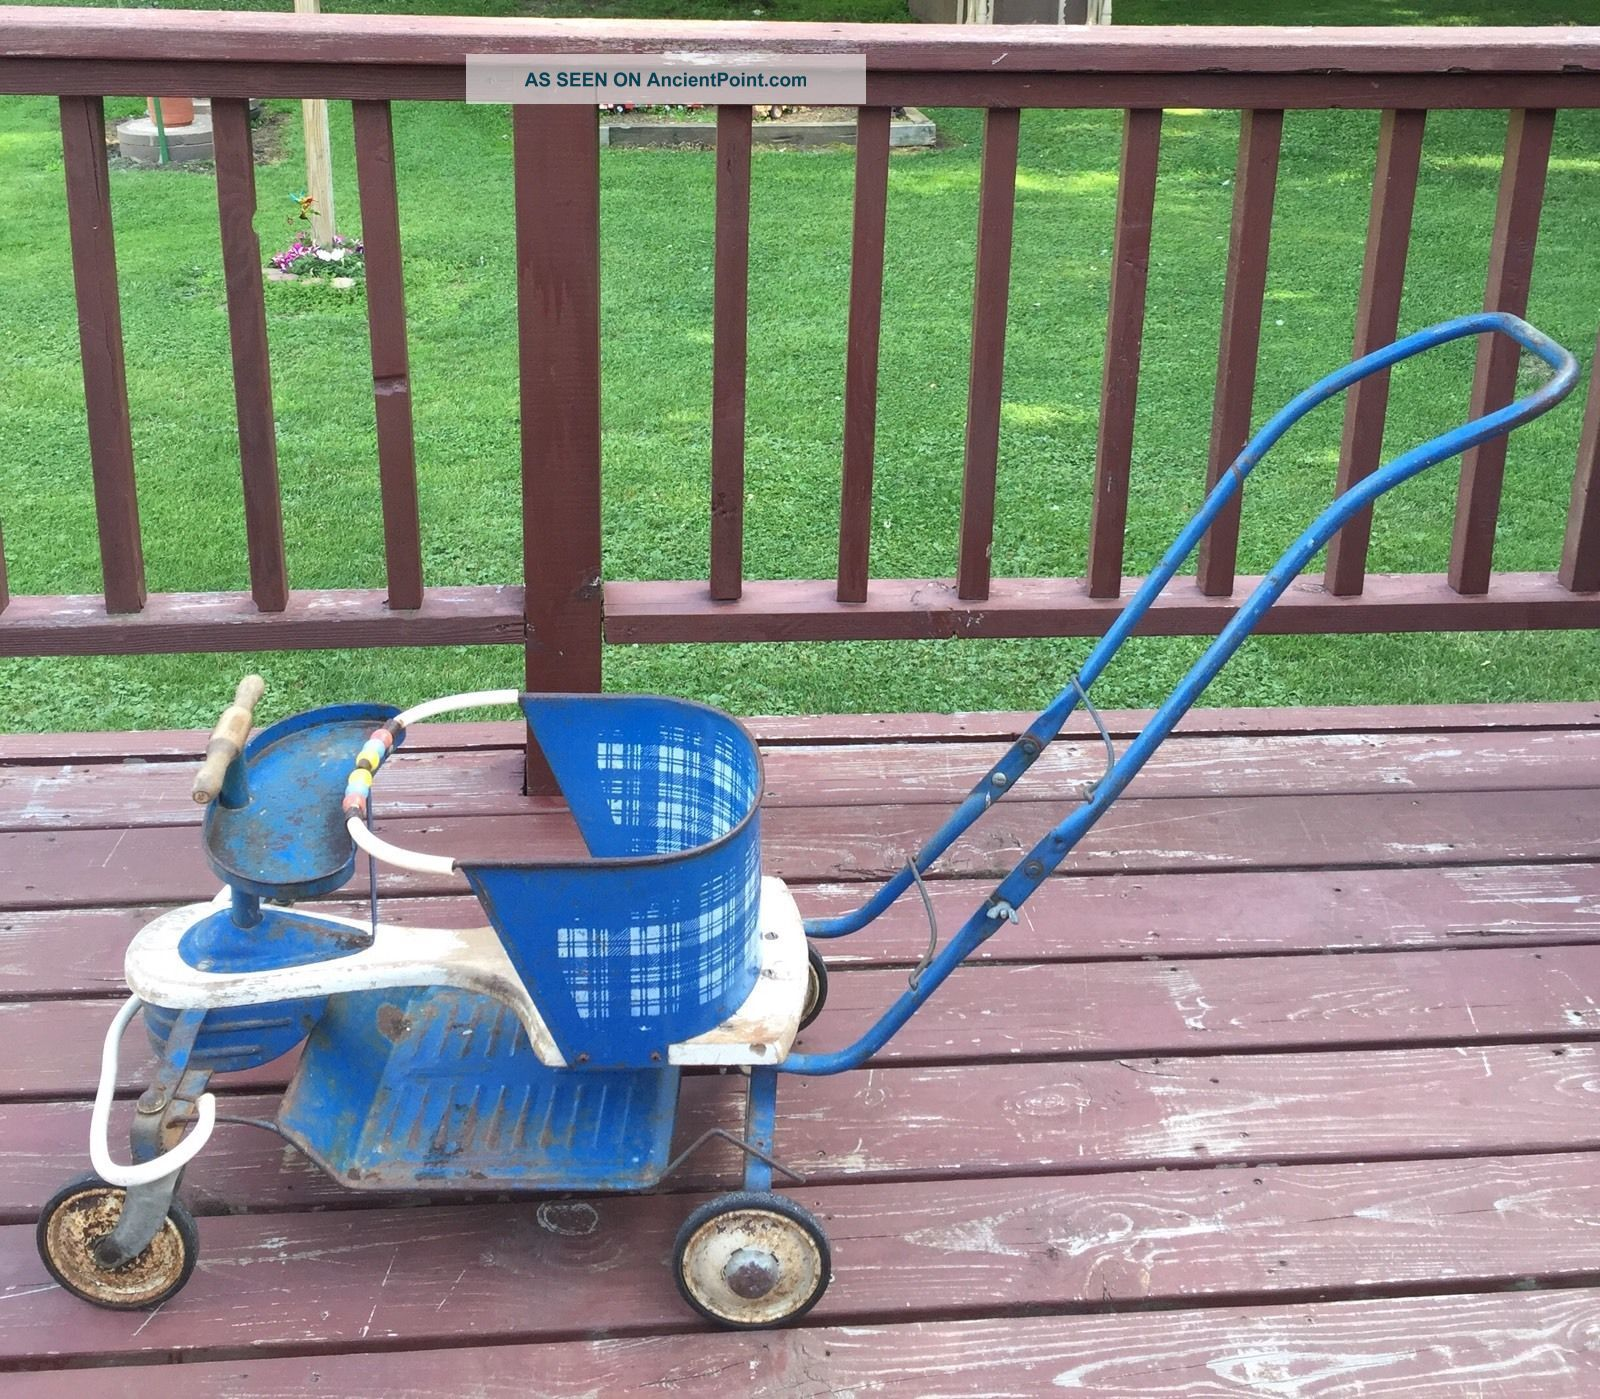 Vintage Taylor Tot 1950s Blue White Baby Stroller Walker Baby Carriages & Buggies photo